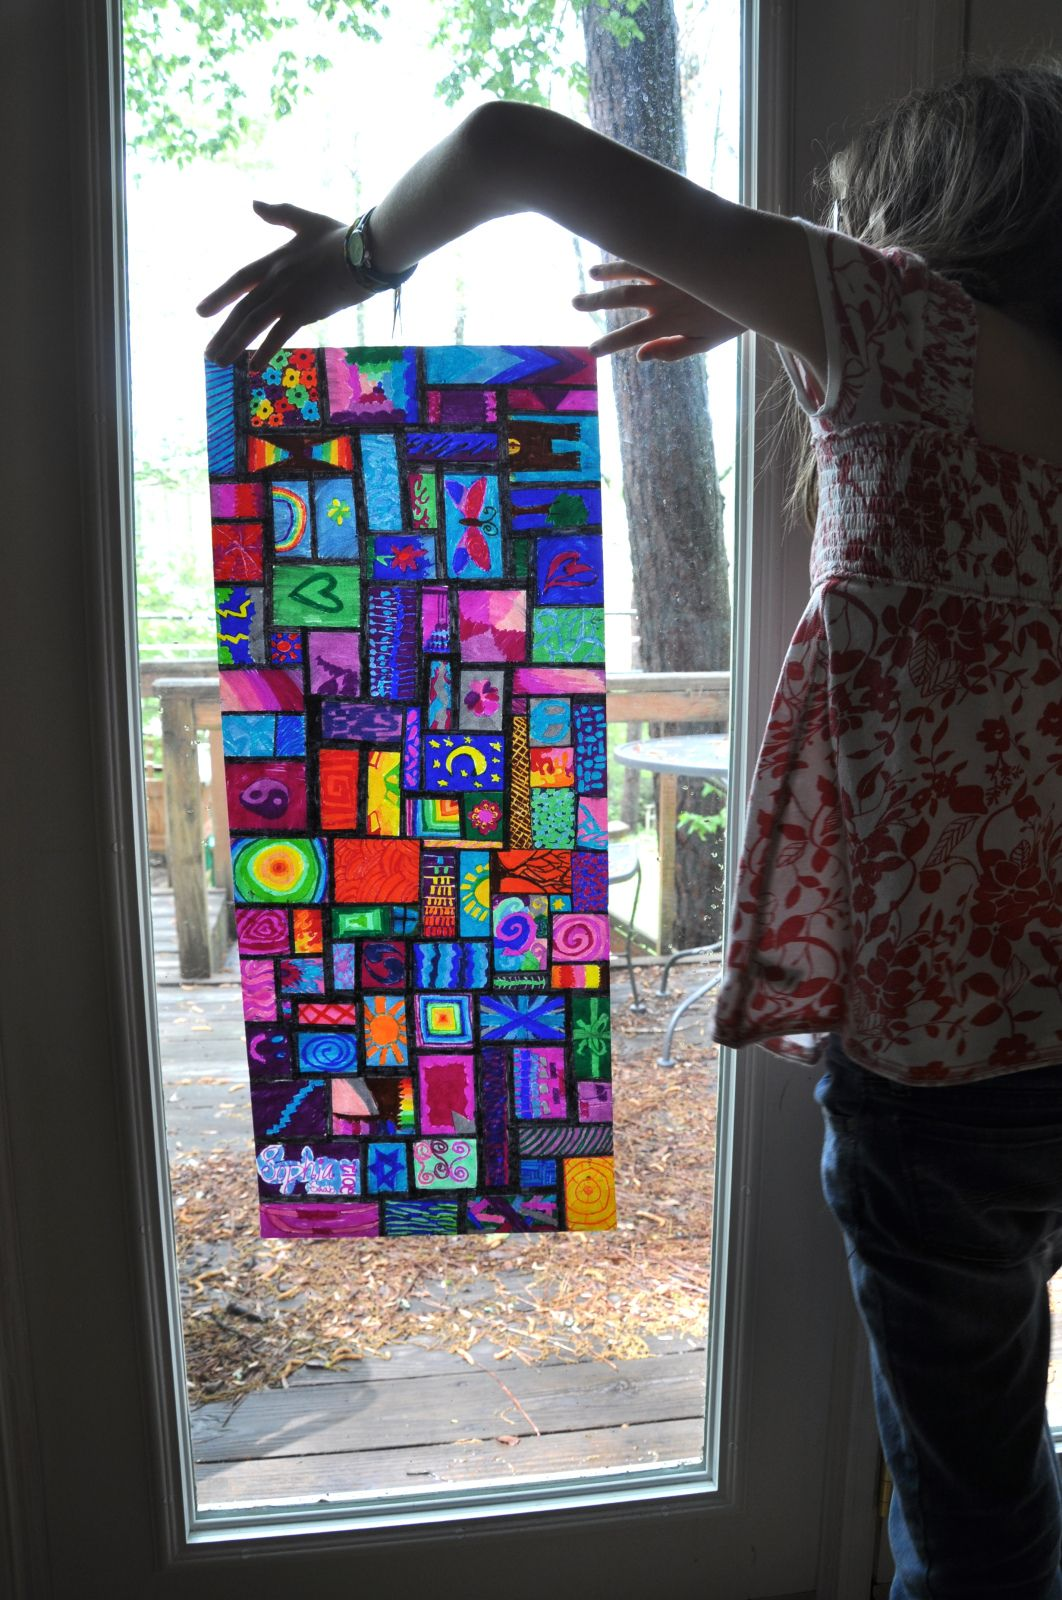 Sharpie on waxed paper makes pretty window art diyprojects